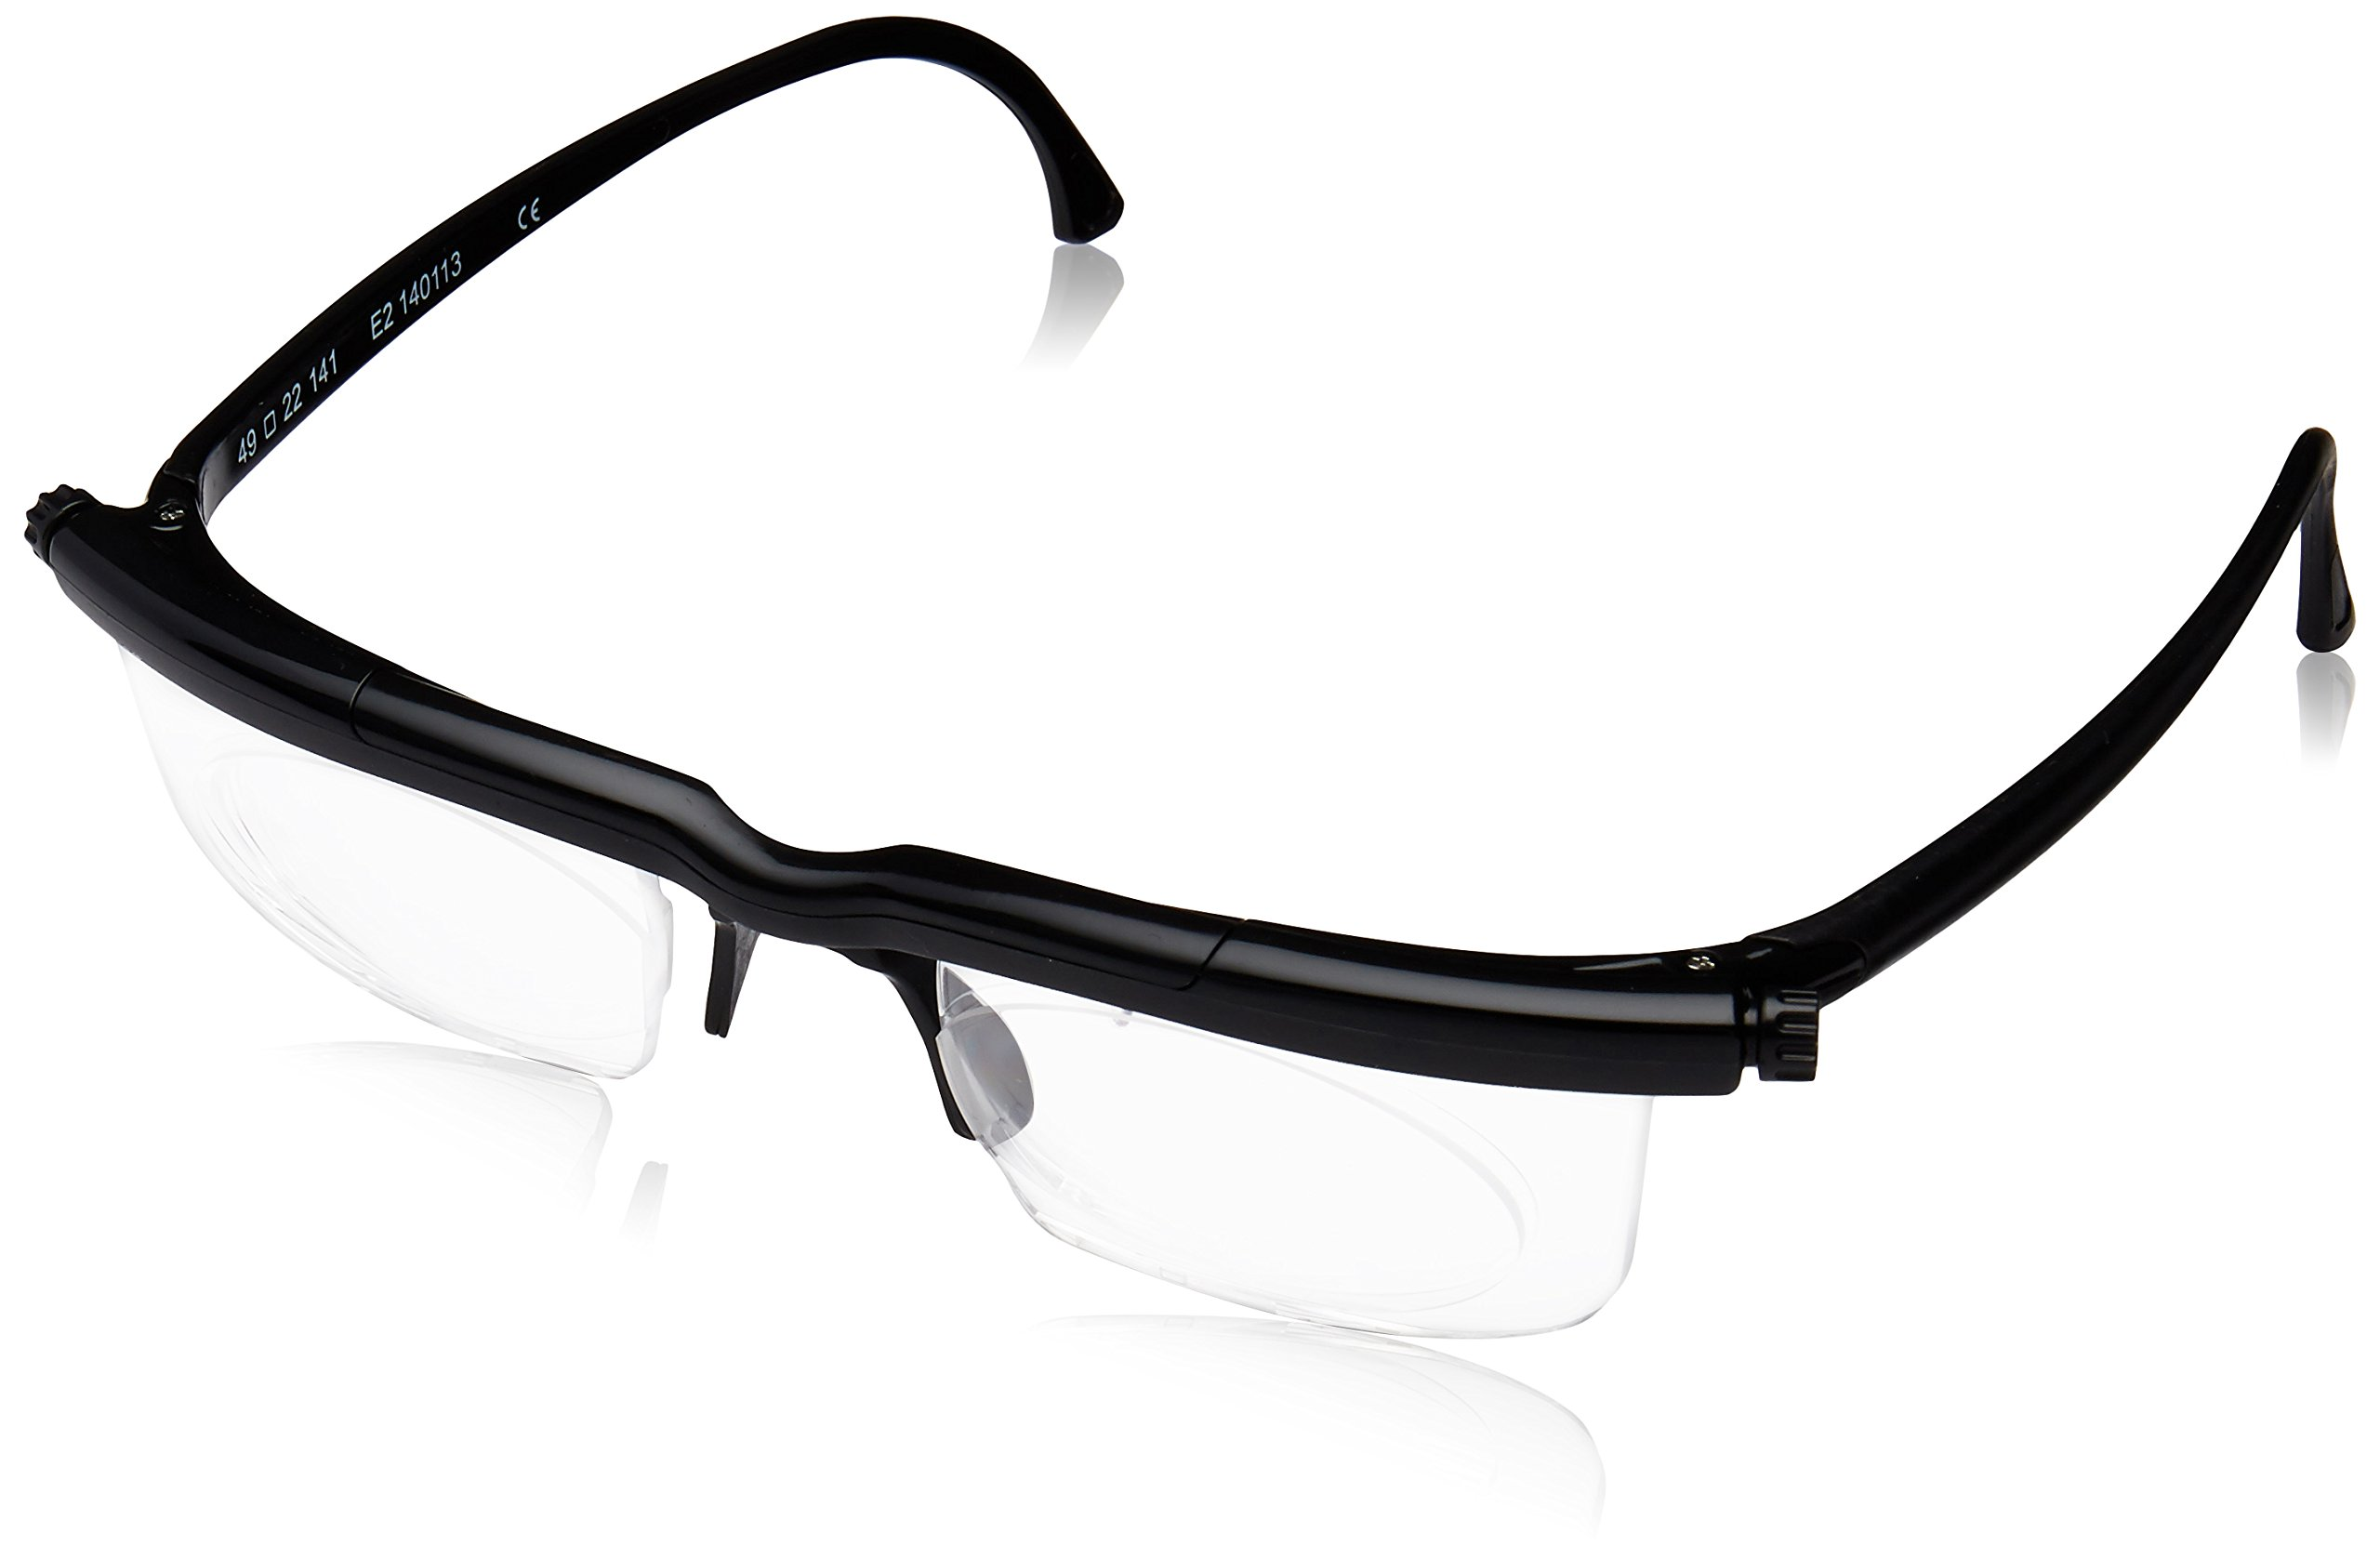 Amazoncom As Seen On TV Instant Adjustable Glasses Ounce - Ms word invoice template free download eyeglasses online store